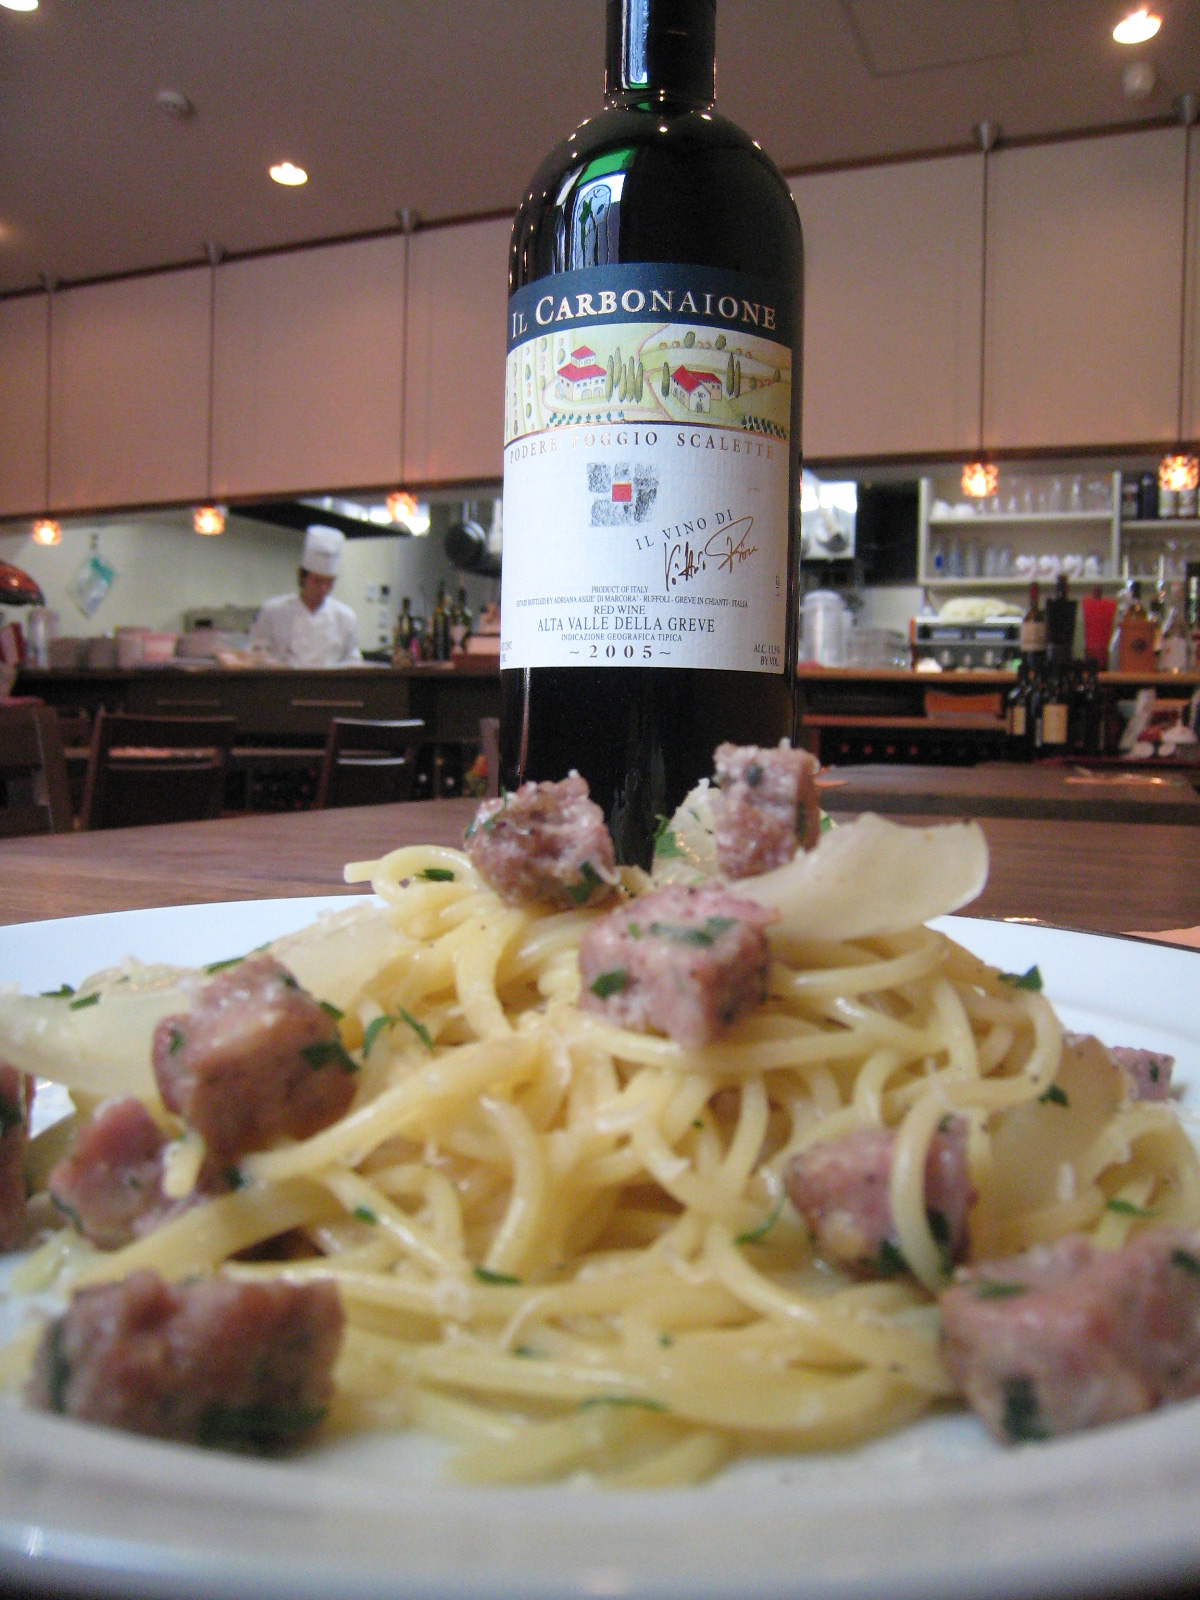 http://t-firenze.com/blog/il%20carbonaione.JPG